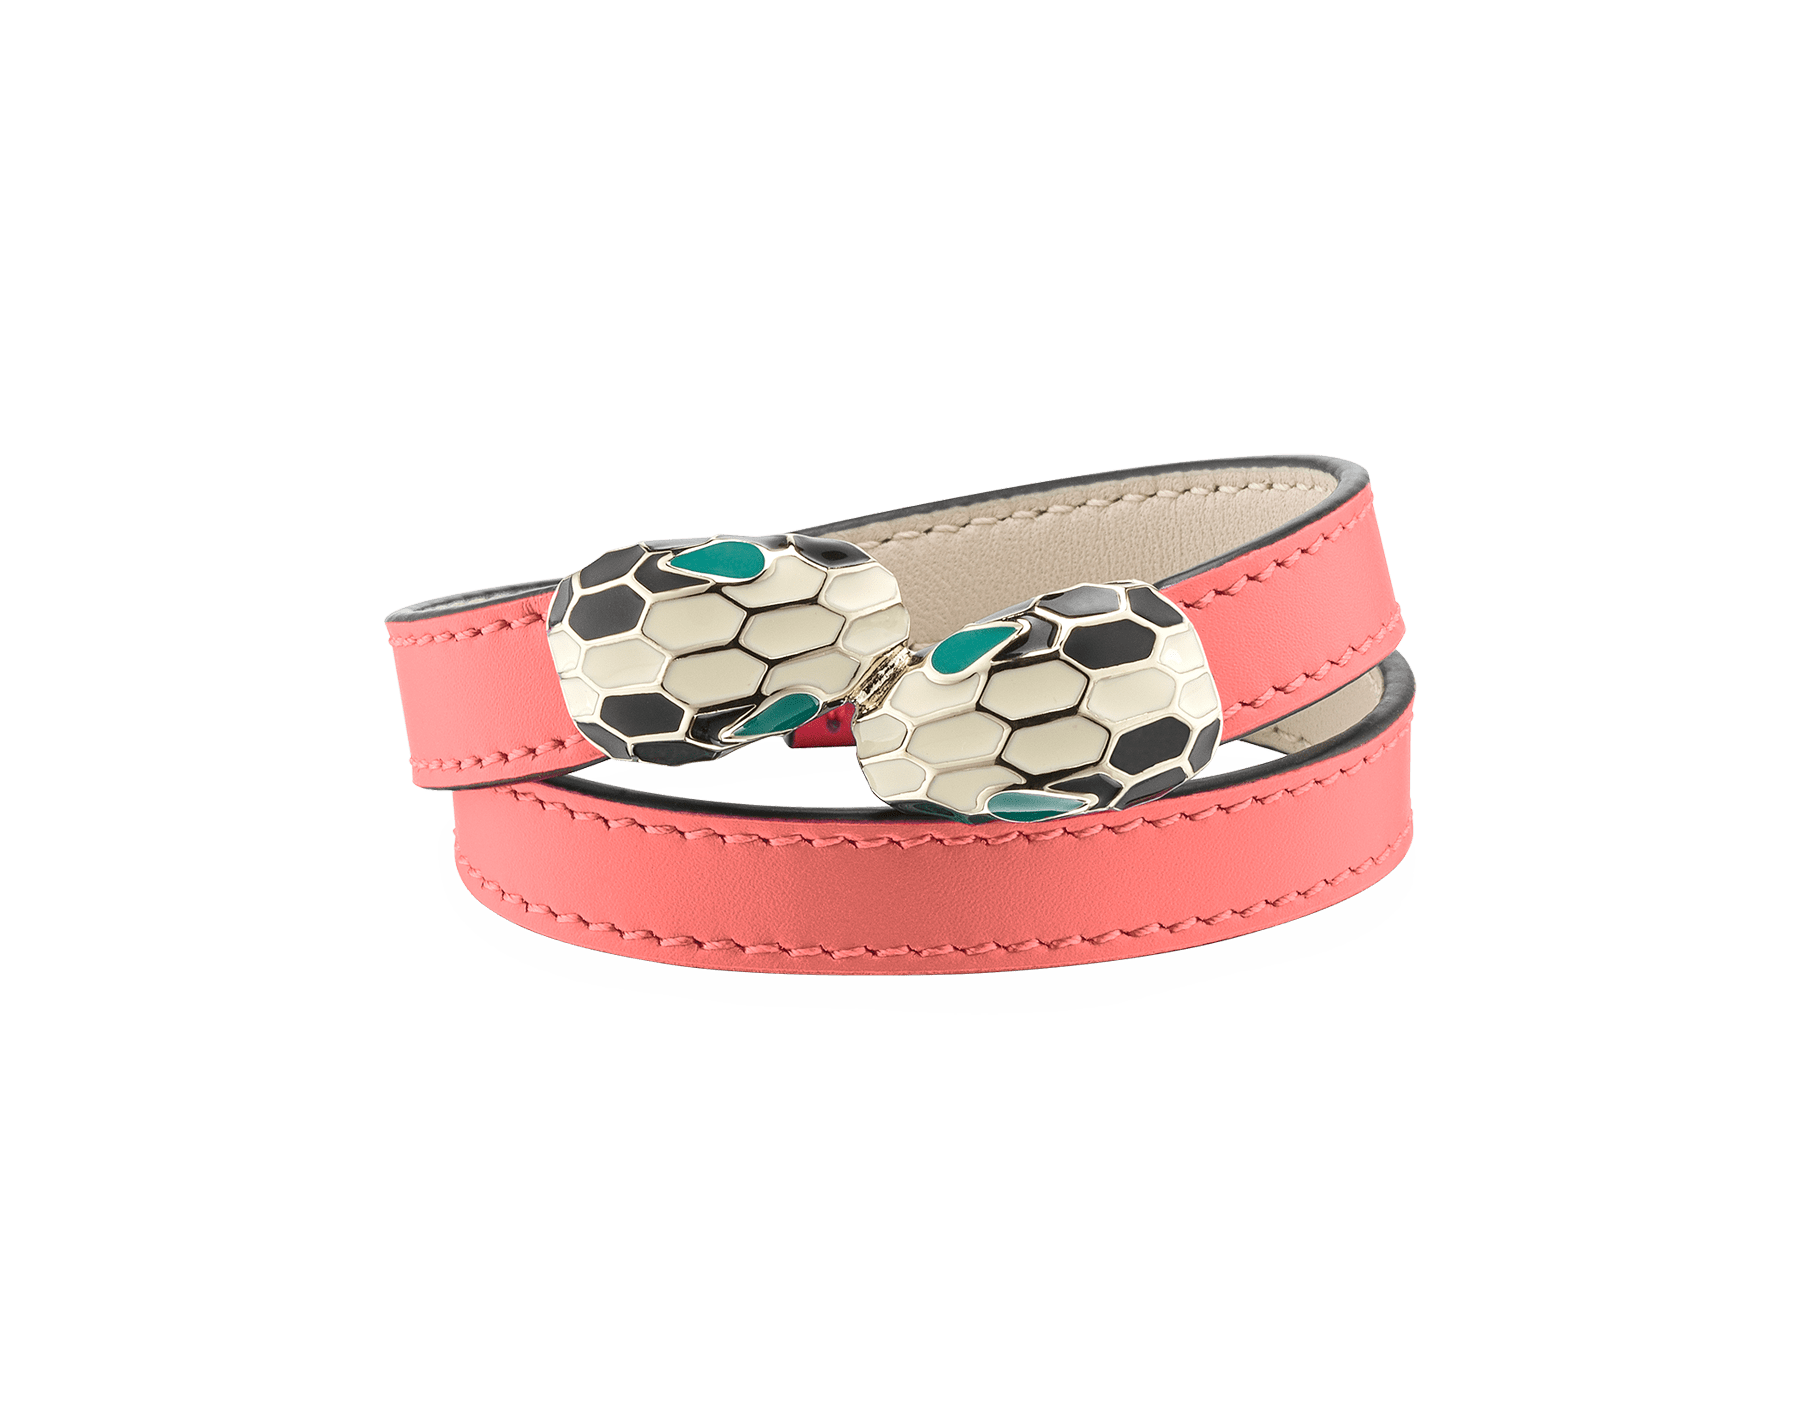 Serpenti Forever multi-coiled bracelet in silky coral calf leather, with light gold plated brass hardware. Iconic contraire snakehead décor in black and white enamel, with green enamel eyes. MCSerp-CL-SC image 1